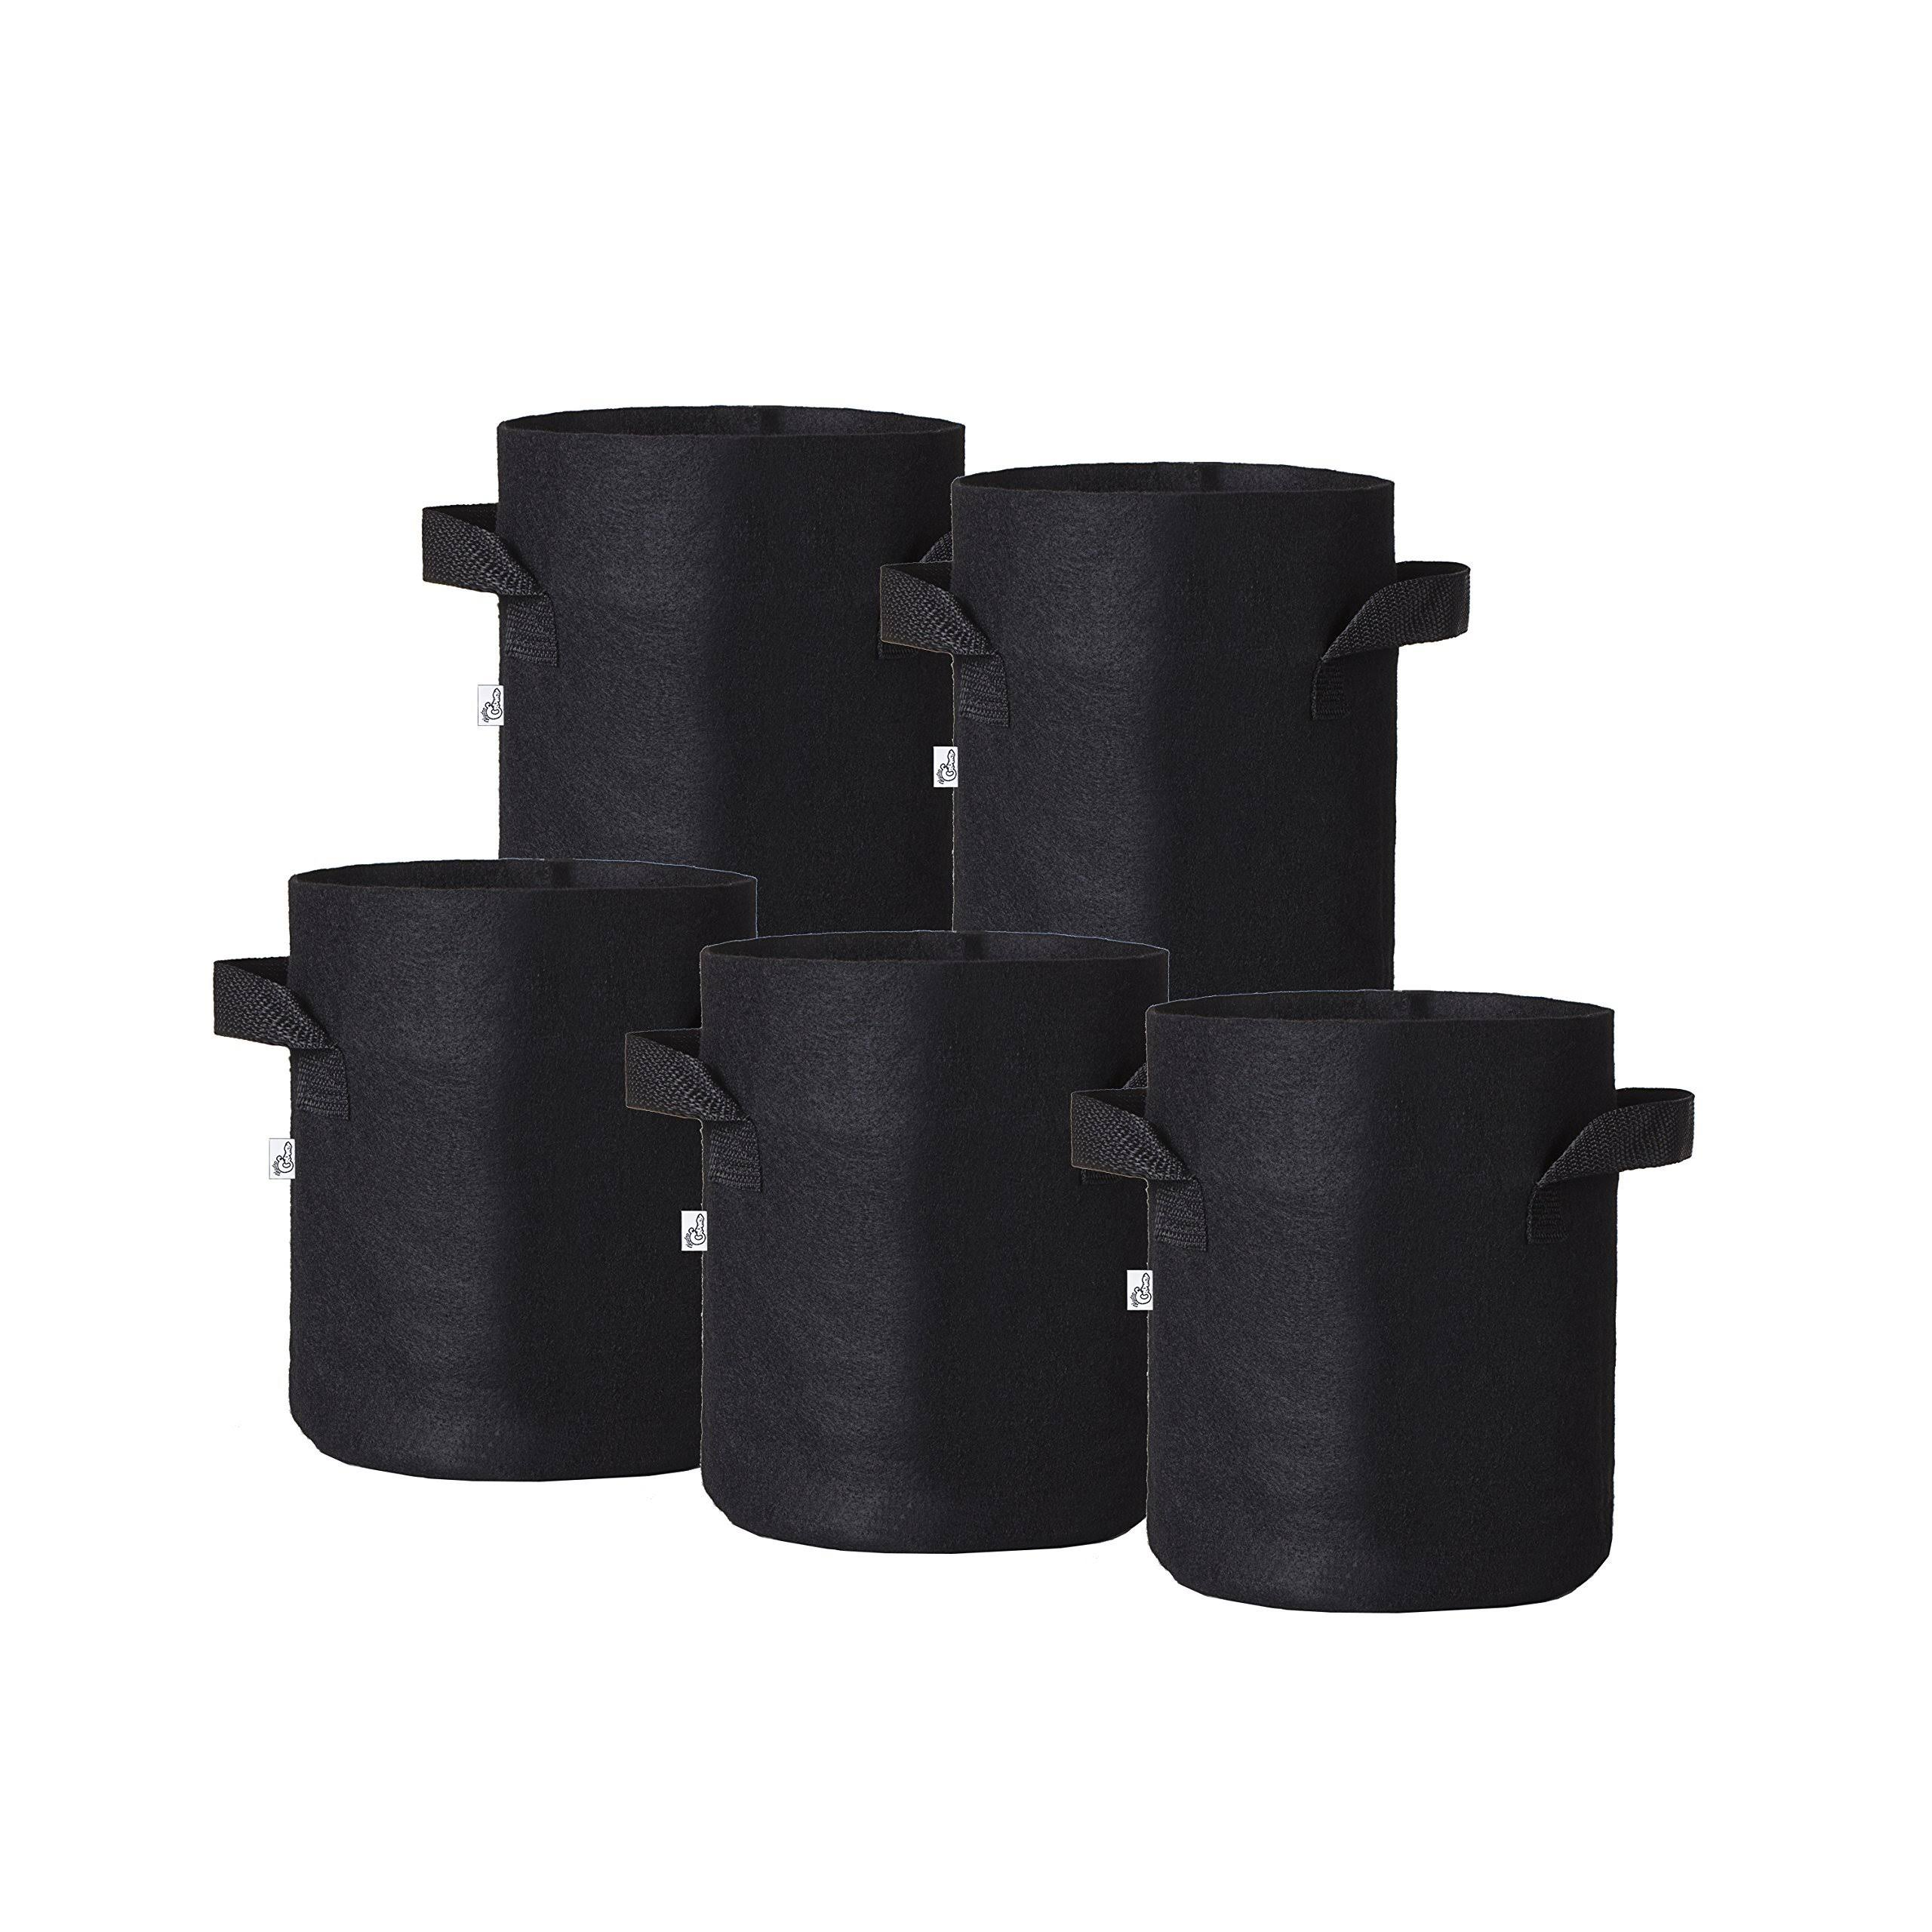 Hydro Crunch 10 in. x 10 in. 3 gal. Breathable Fabric Pot Bags with Handles Black Felt Grow Pot (5-Pack)